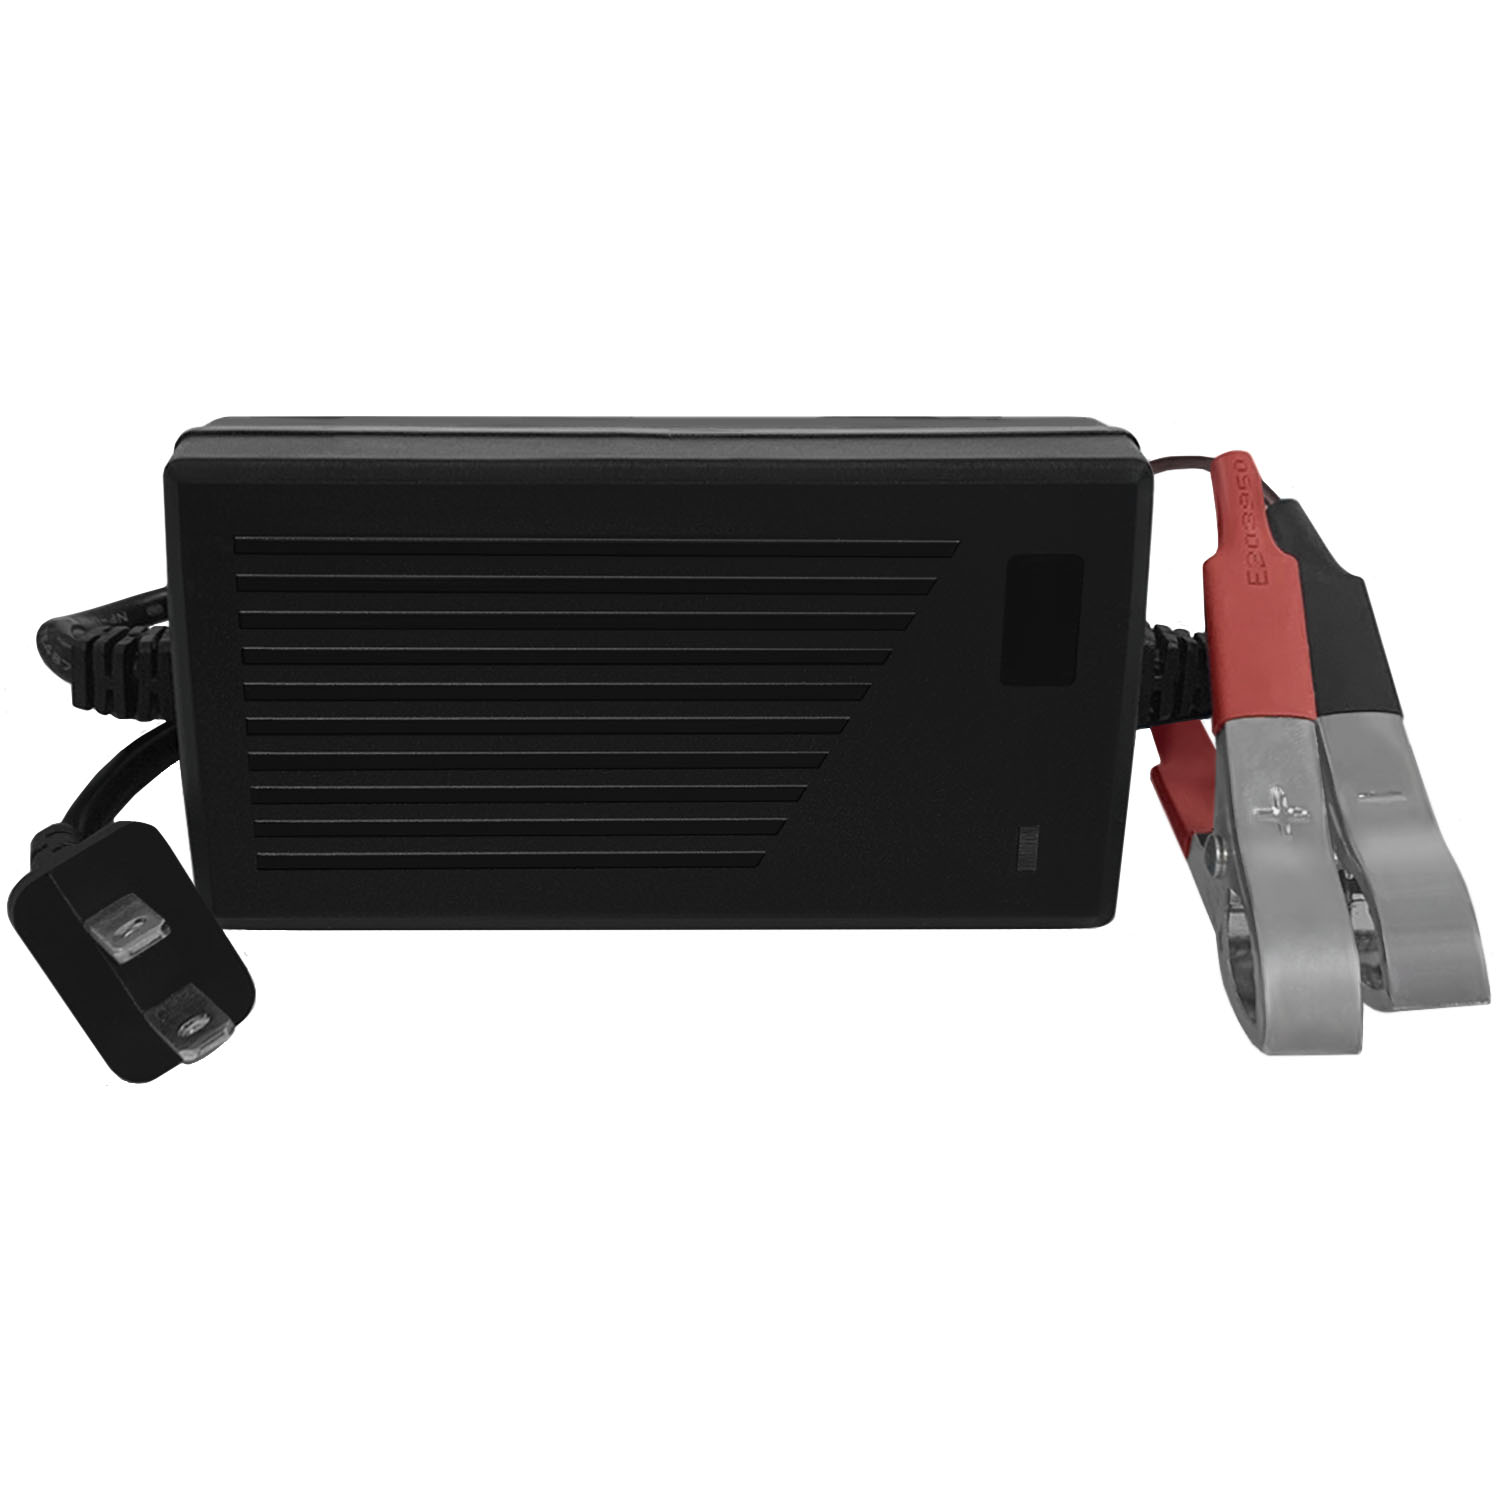 18 Volt 2 Amp SLA Battery Charger and Maintainer - 1